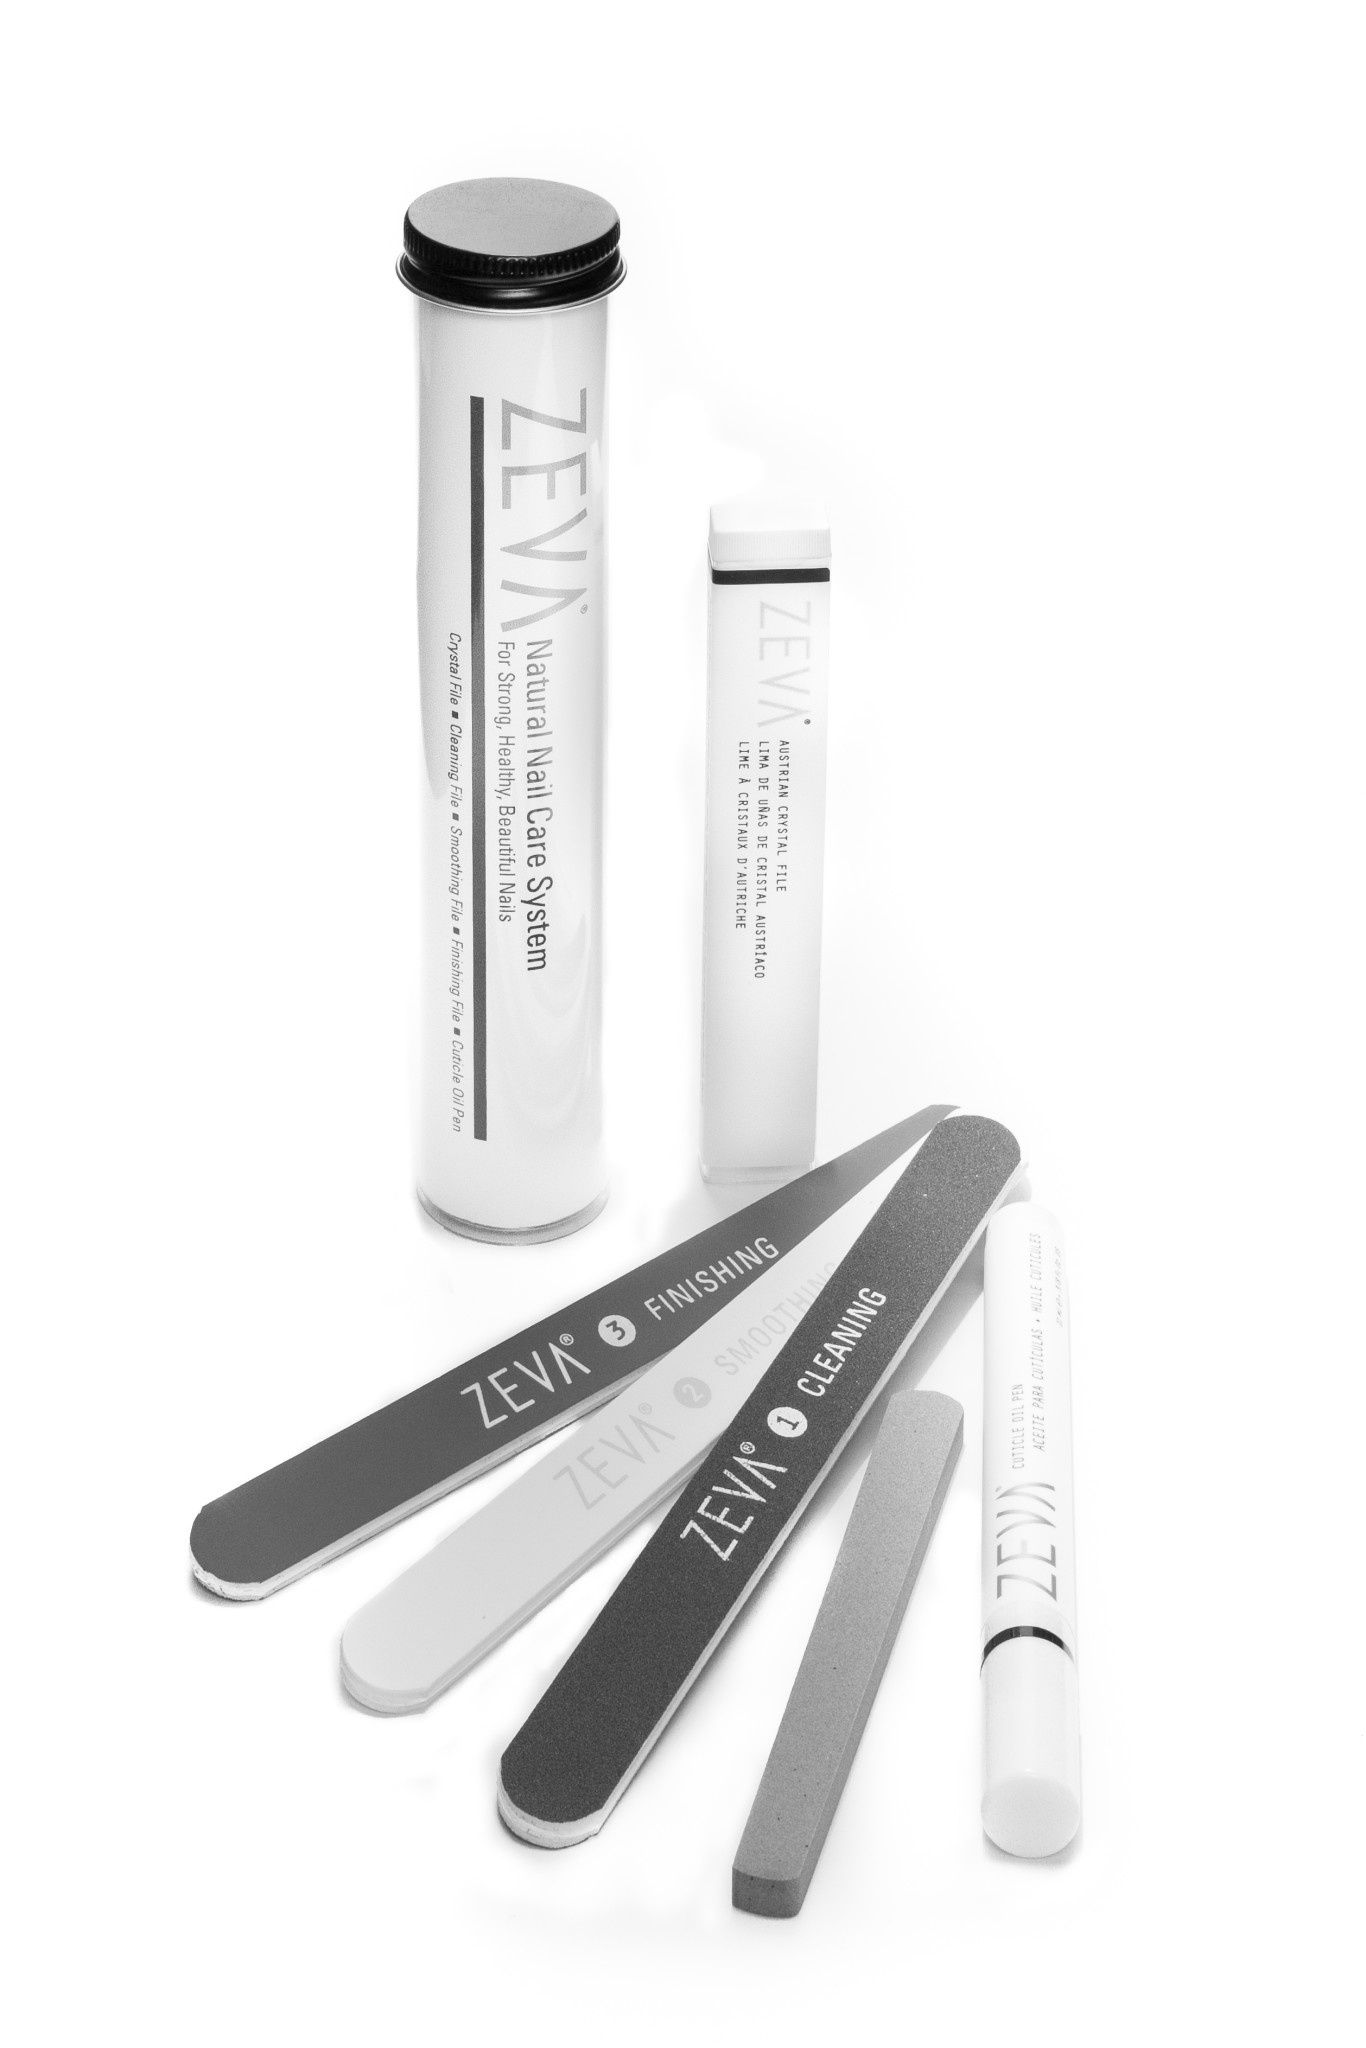 Zeva 5-Piece Natural Nail Care System